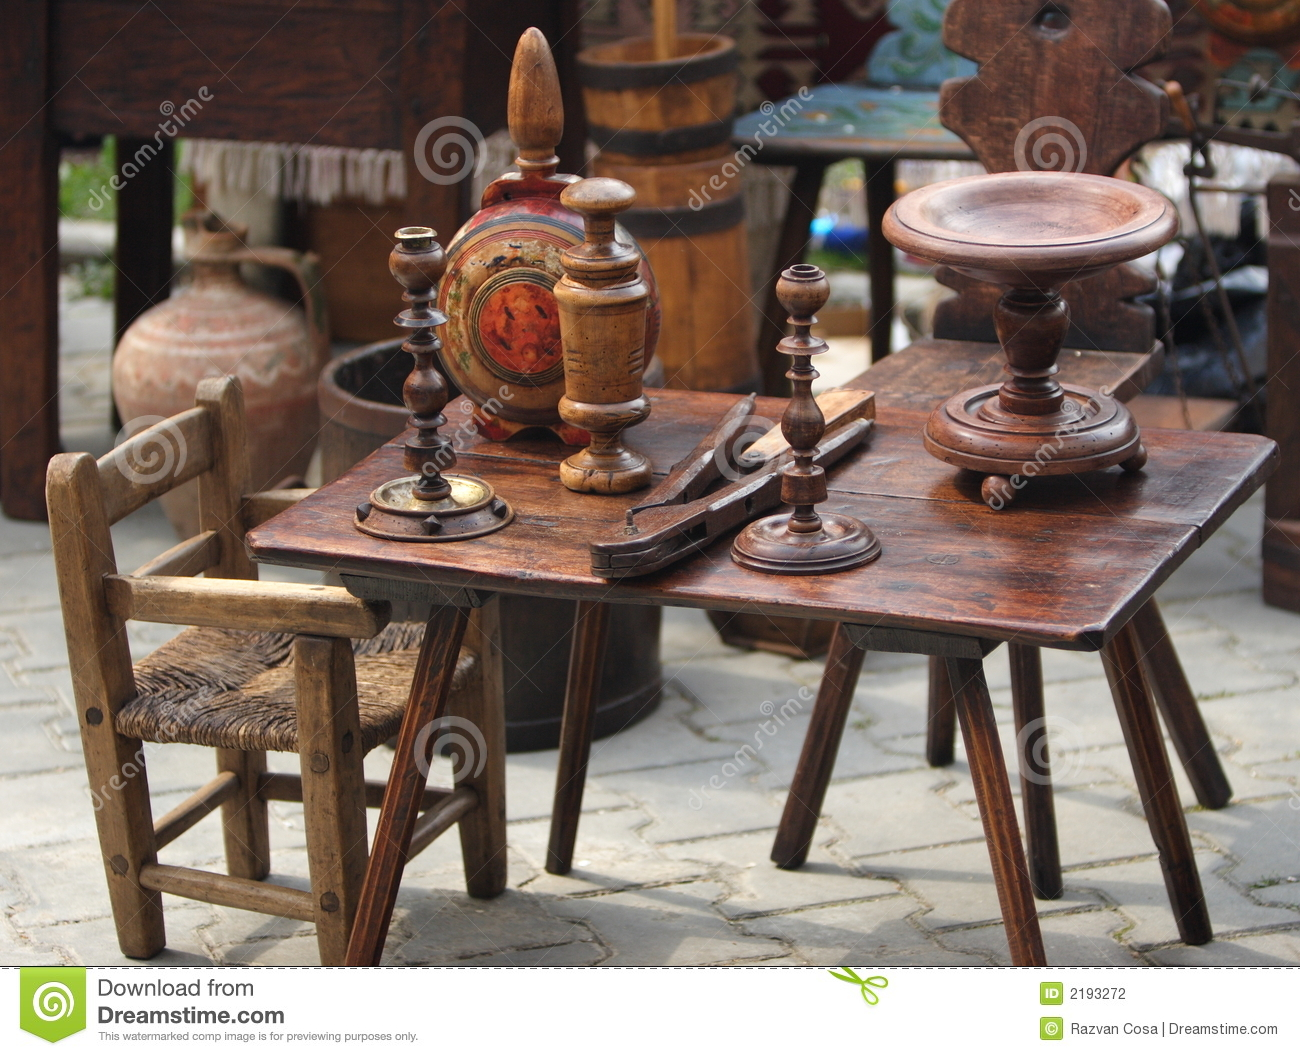 Old wood furniture items stock photo image of swap furniture 2193272 Old wooden furniture